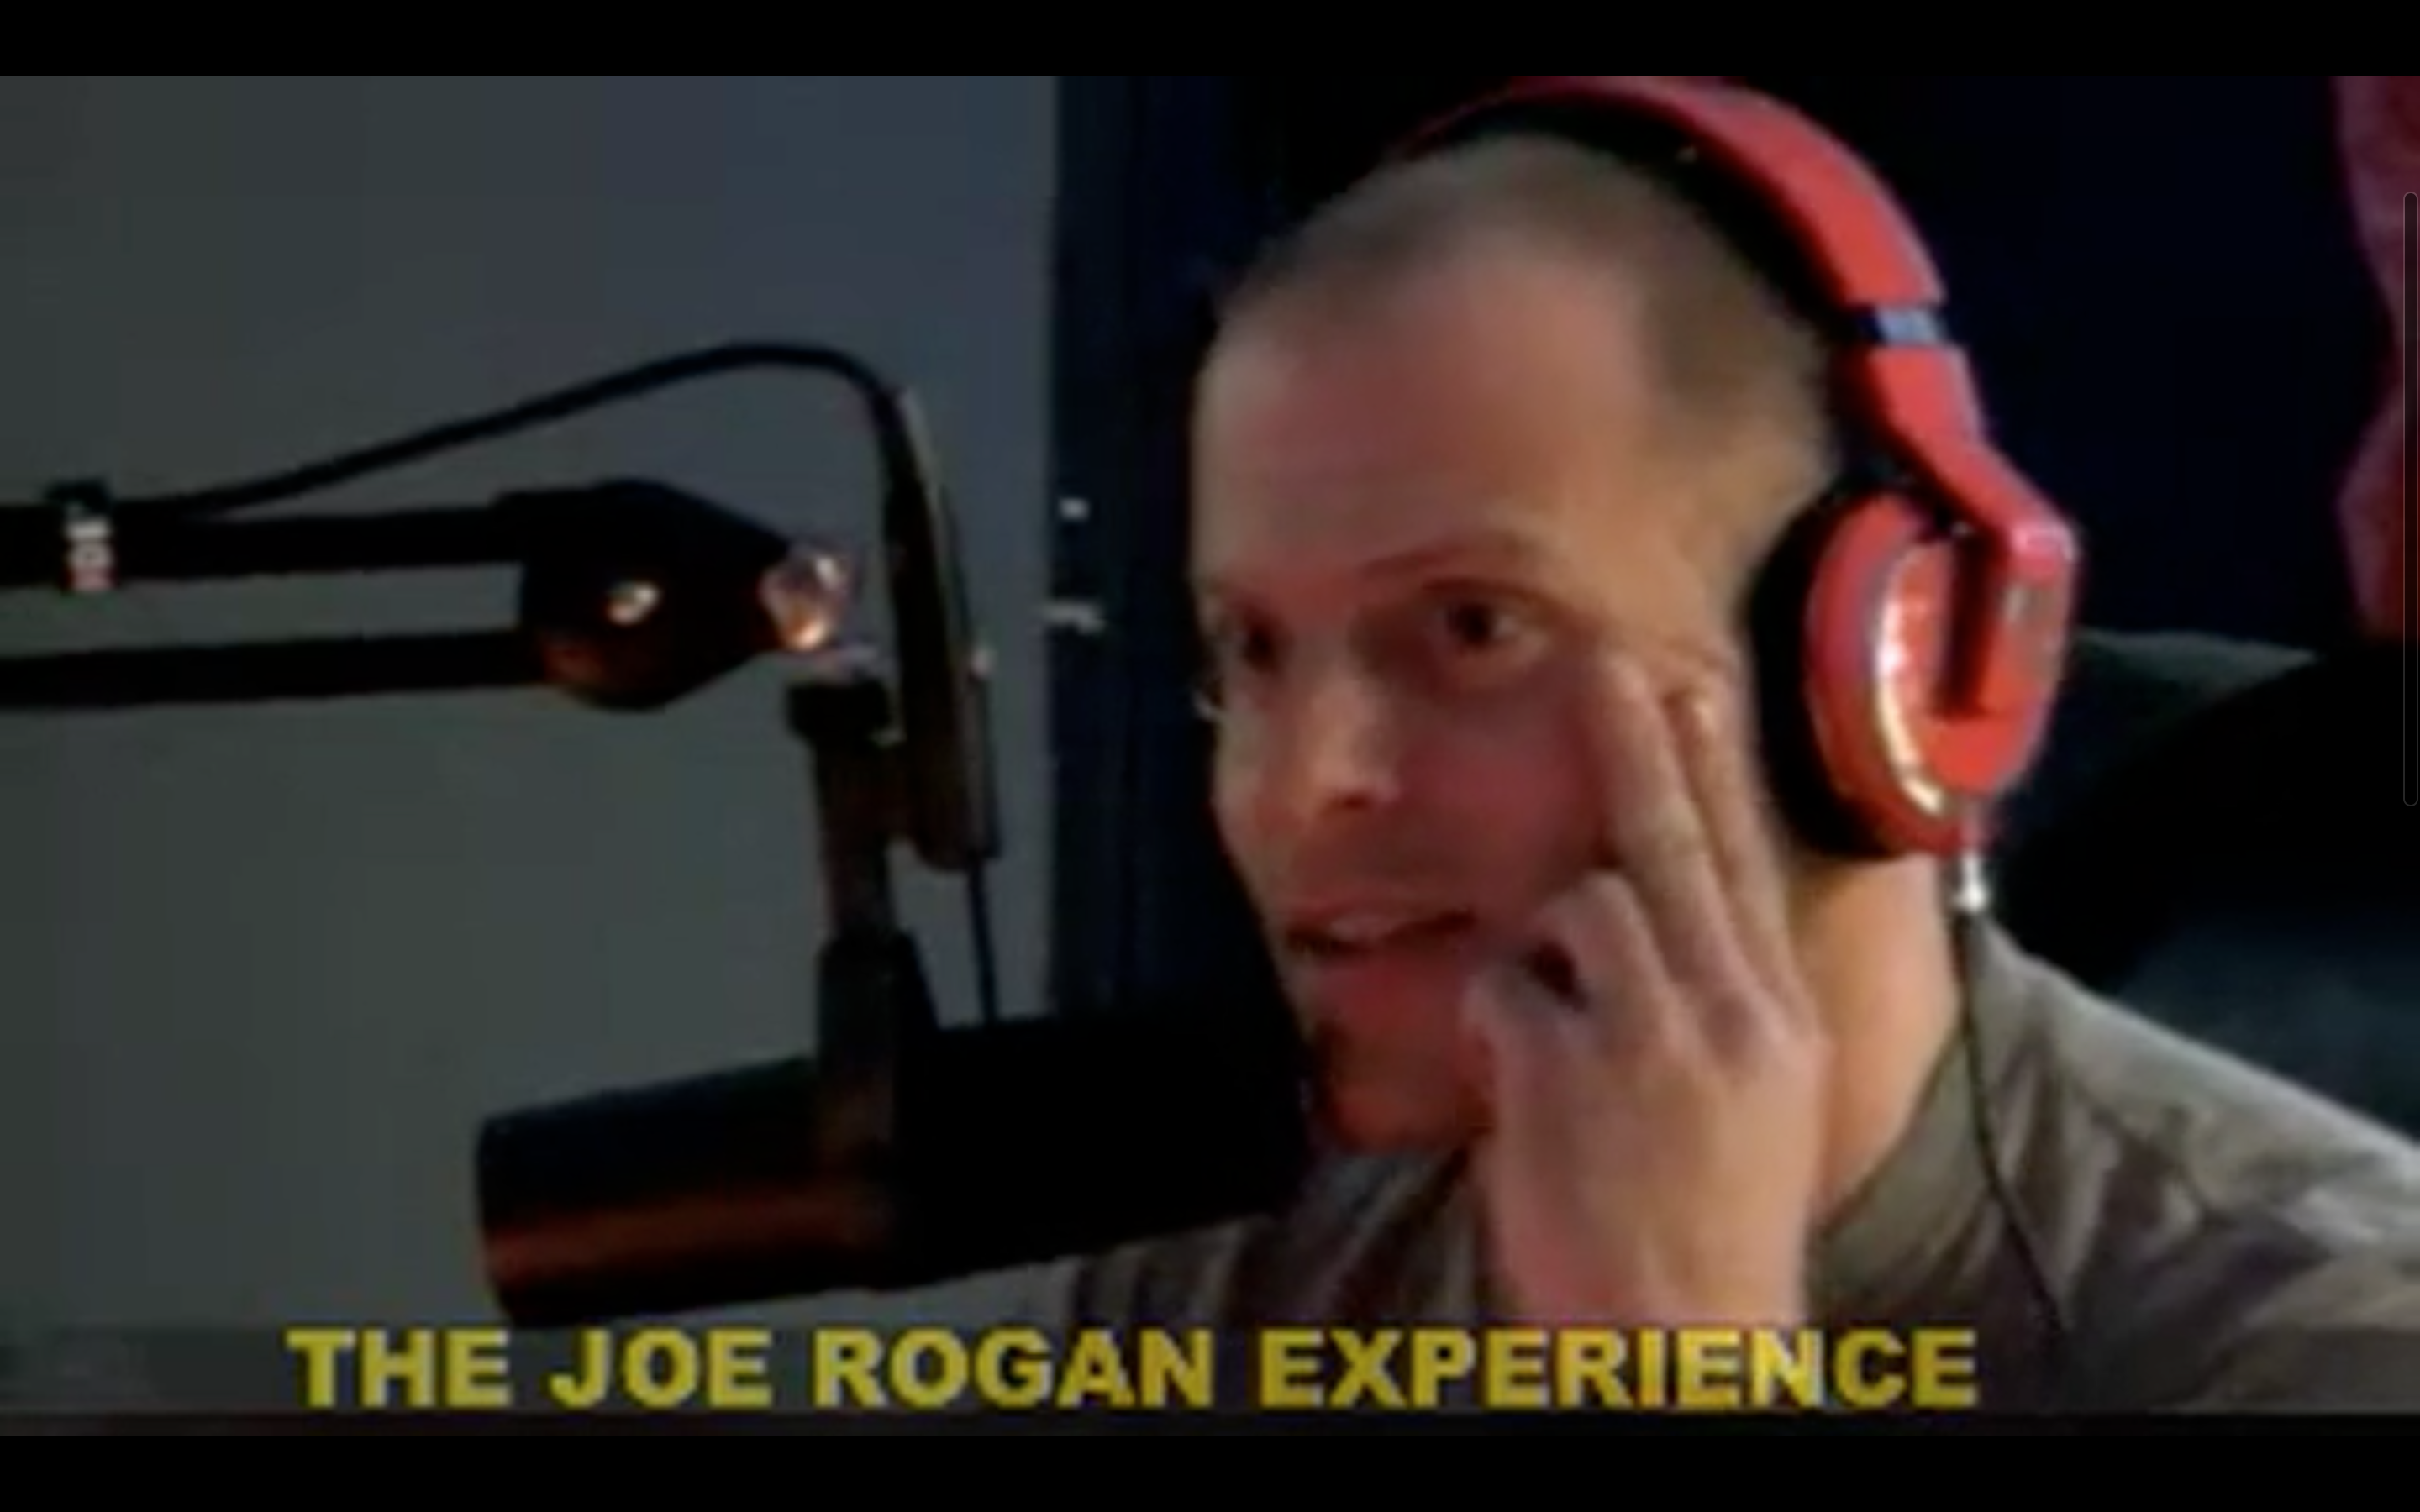 The Joe Rogan Experience #320 - Tim Ferriss